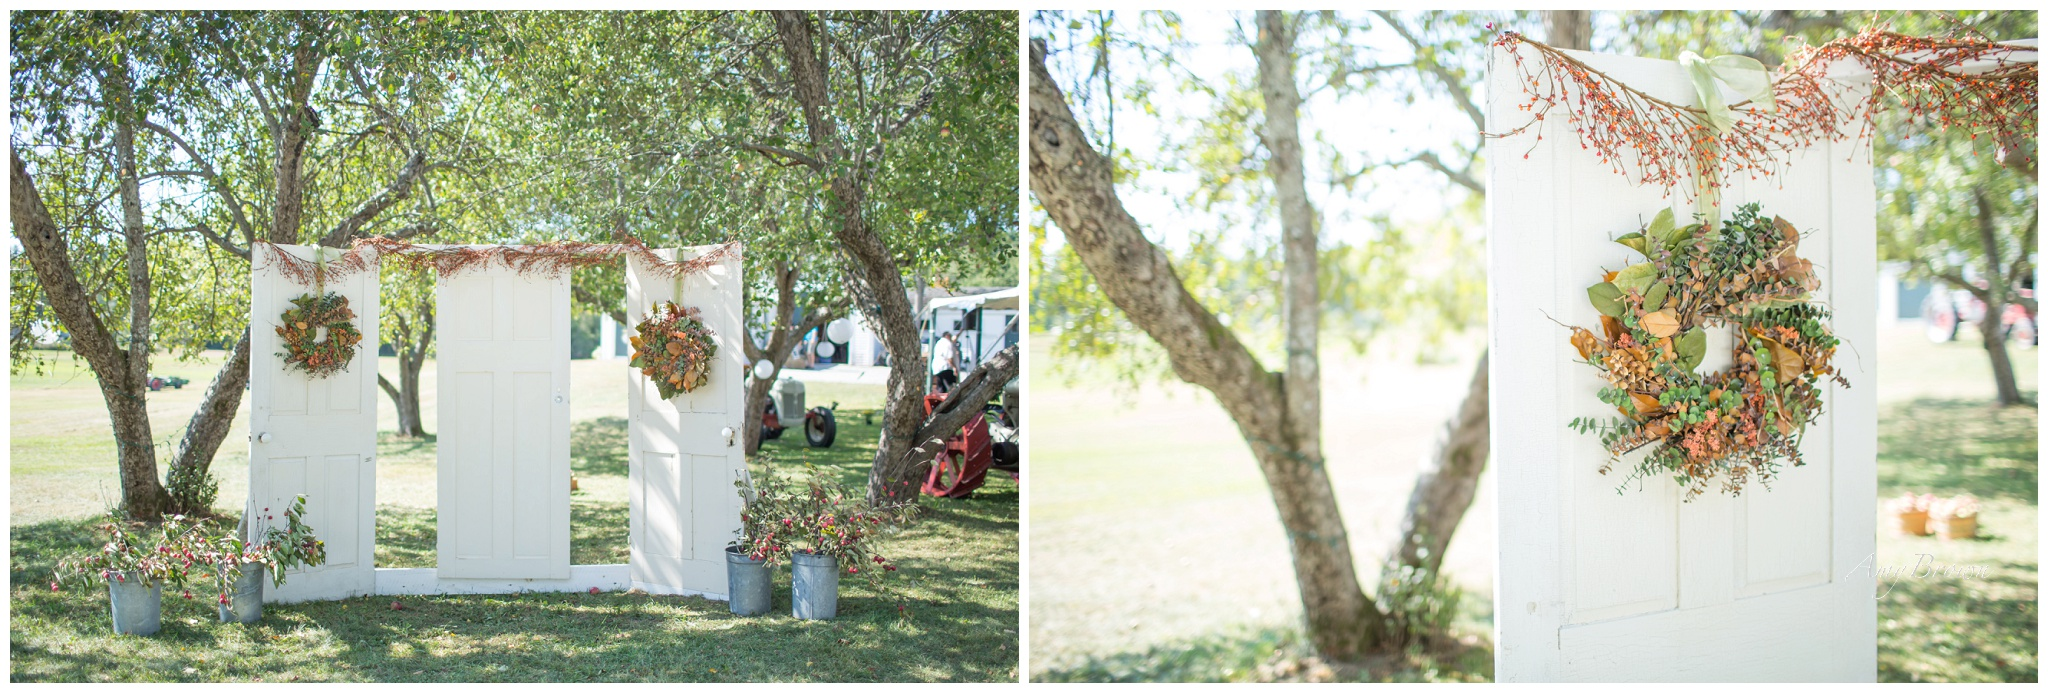 Seacoast NH Wedding Photographer |  NH Farm Wedding | Door Wedding Altar | DIY Wedding Altar | Amy Brown Photography